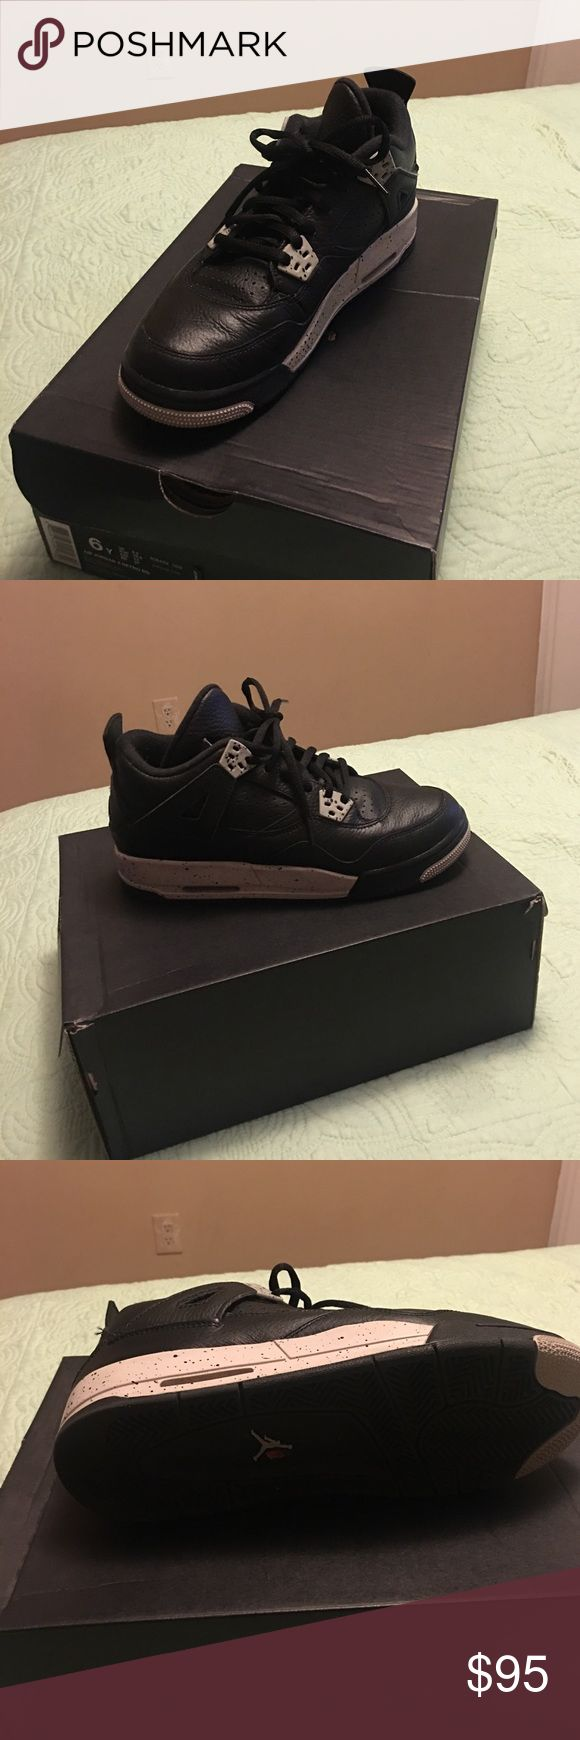 Jordan tennis shoes Air Jordan retro 4, oreos. Sized 6Y, fits a woman's 7.5-8 Jordan Shoes Sneakers